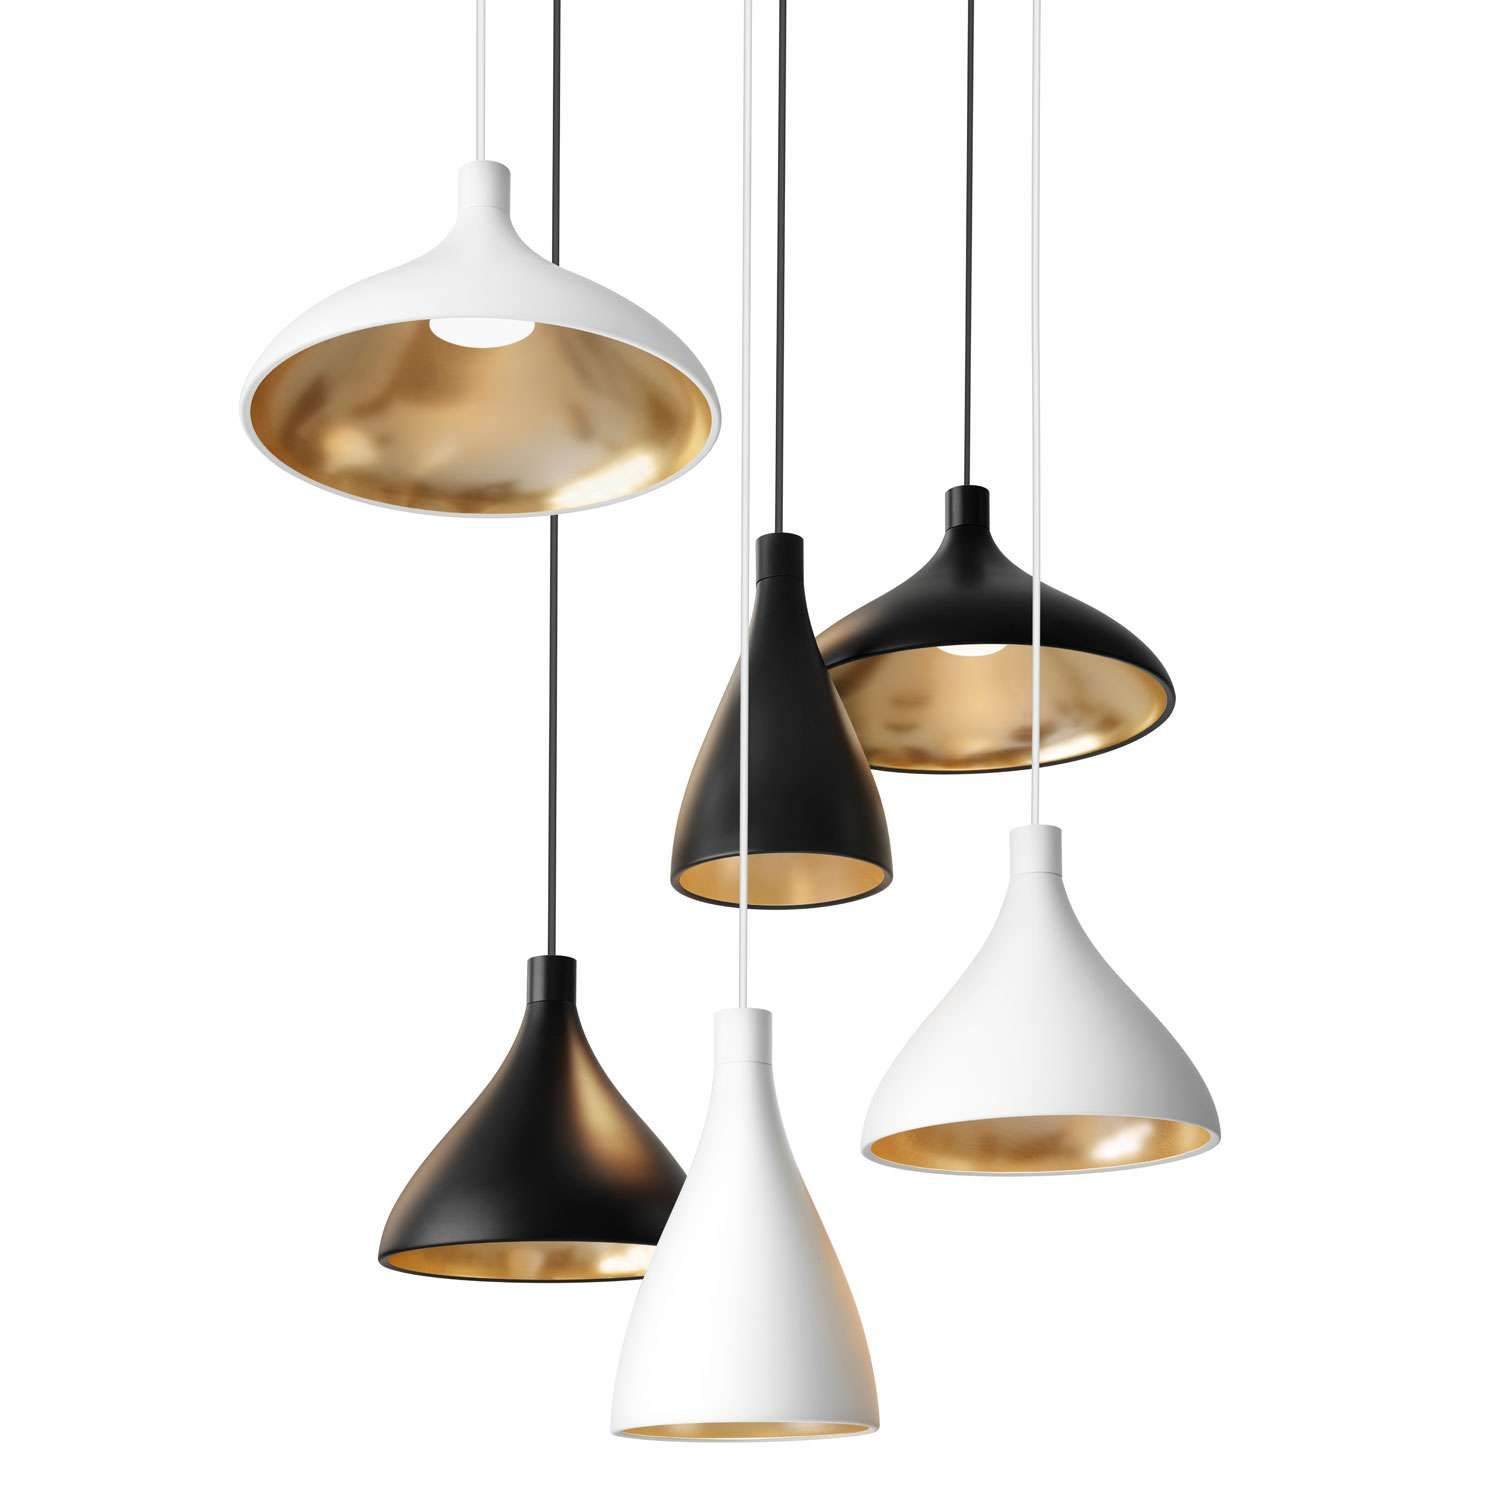 Swell wide pendant light cottage interiors modern contemporary swell wide pendant light mozeypictures Images